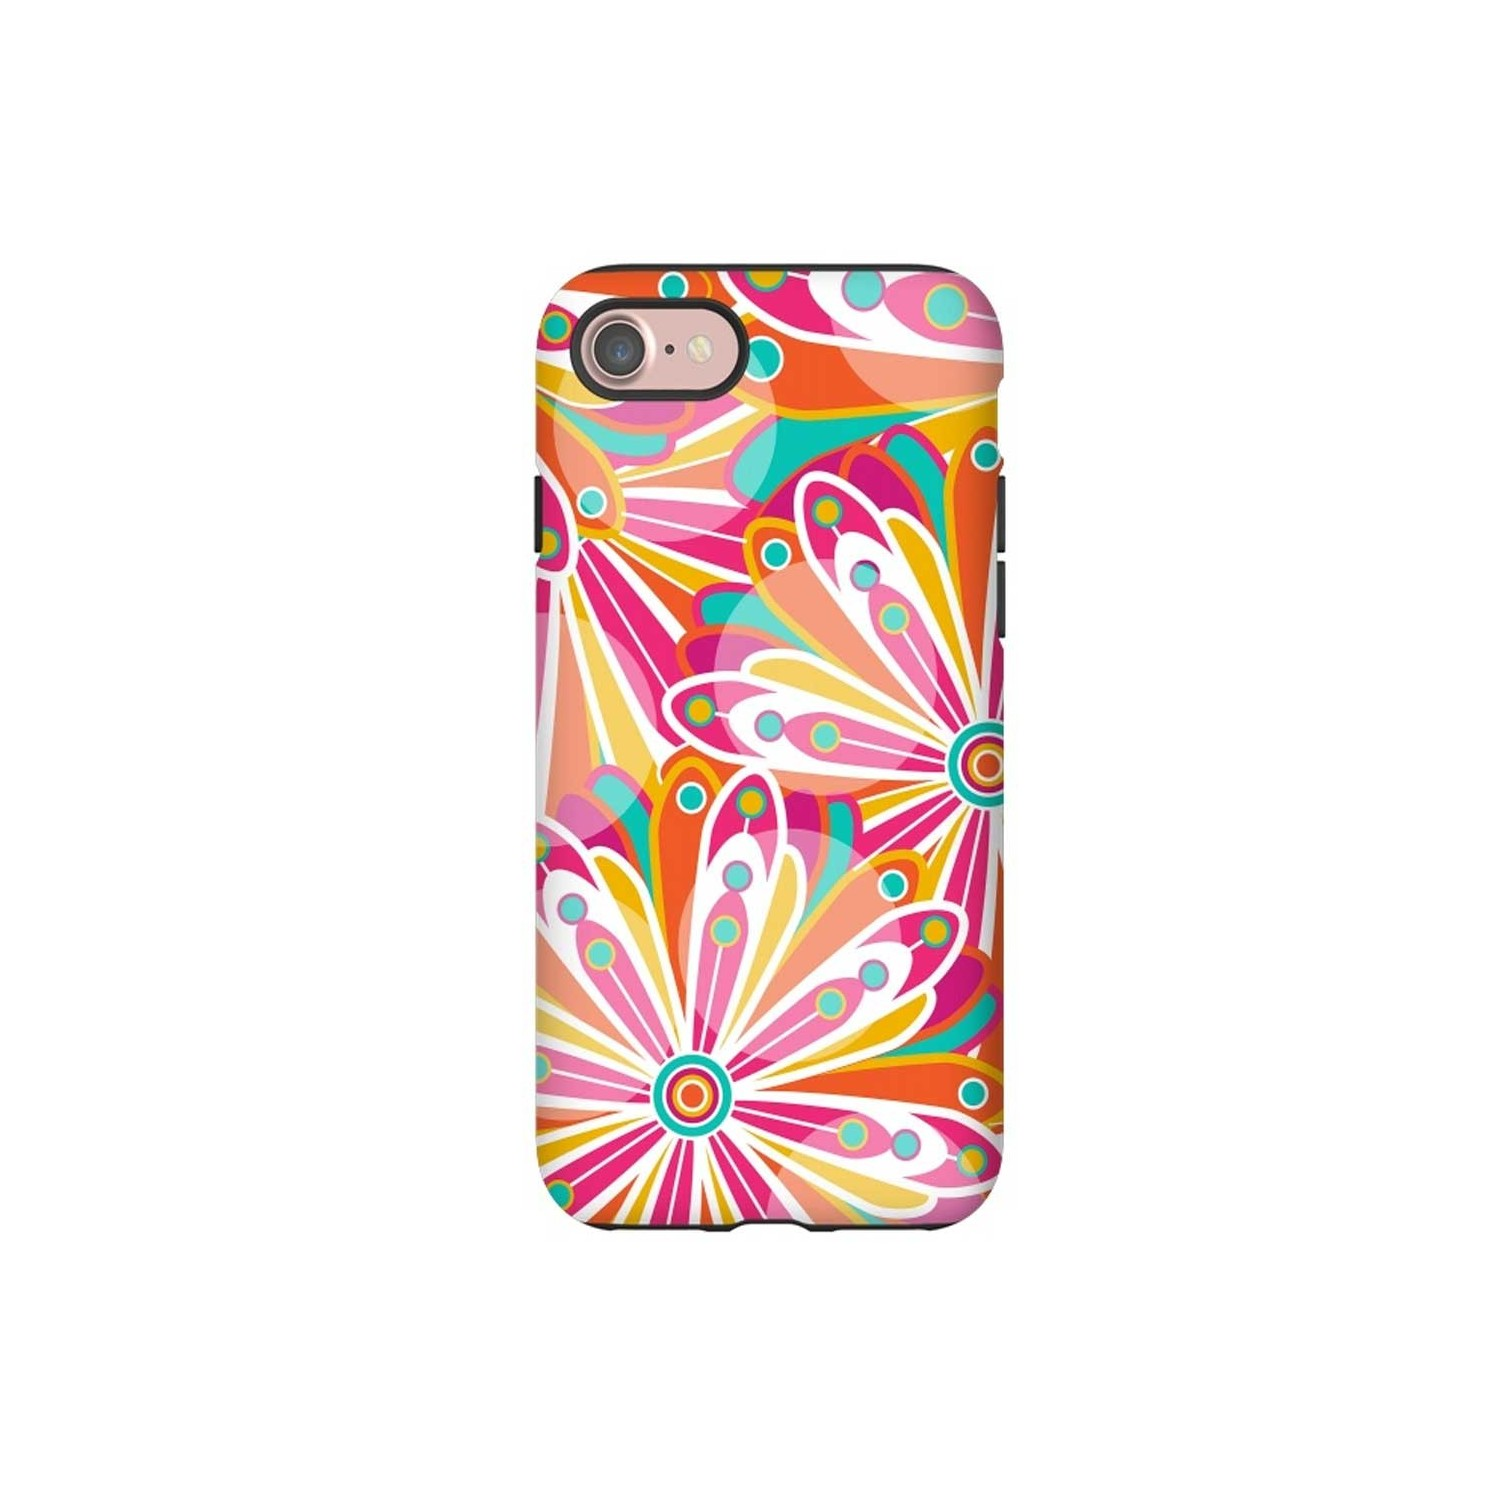 Case -  ArtsCase StrongFit for iPhone 7 Daybreak by Shelly Bremmer